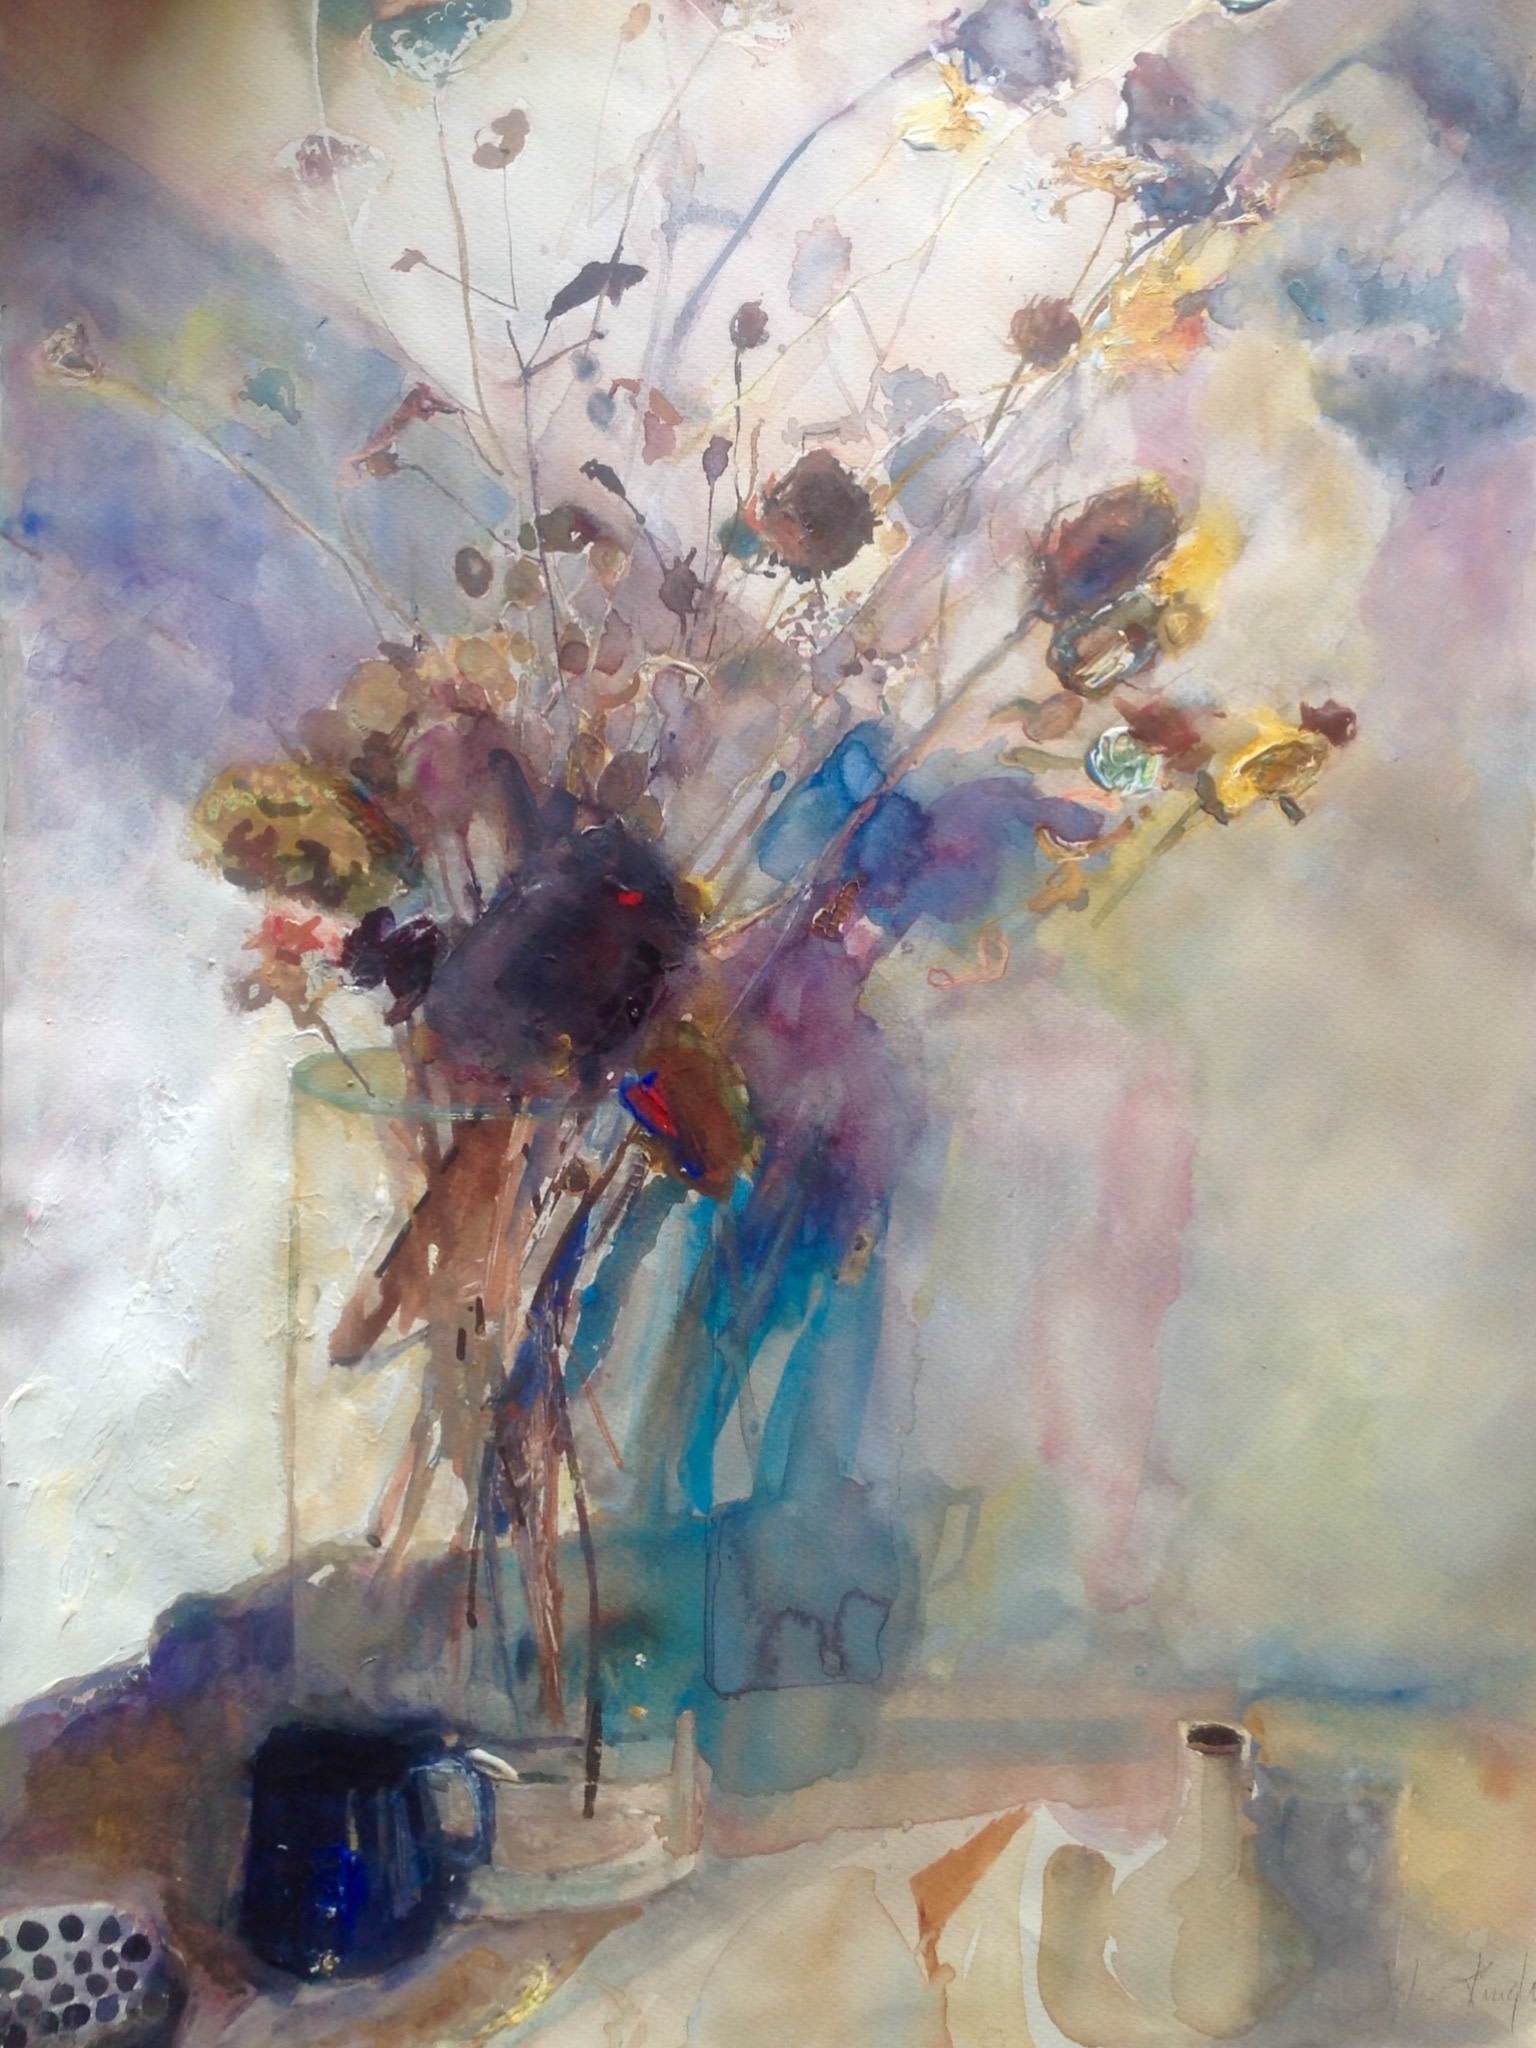 <span class=&#34;link fancybox-details-link&#34;><a href=&#34;/exhibitions/24/works/artworks_standalone10724/&#34;>View Detail Page</a></span><div class=&#34;artist&#34;><span class=&#34;artist&#34;><strong>Sophie Knight</strong></span></div><div class=&#34;title&#34;><em>Dried Grasses with Shaft of Sunlight and Spot Light, in my Studio</em></div><div class=&#34;medium&#34;>watercolour and body colour</div><div class=&#34;dimensions&#34;>66x86cm</div>